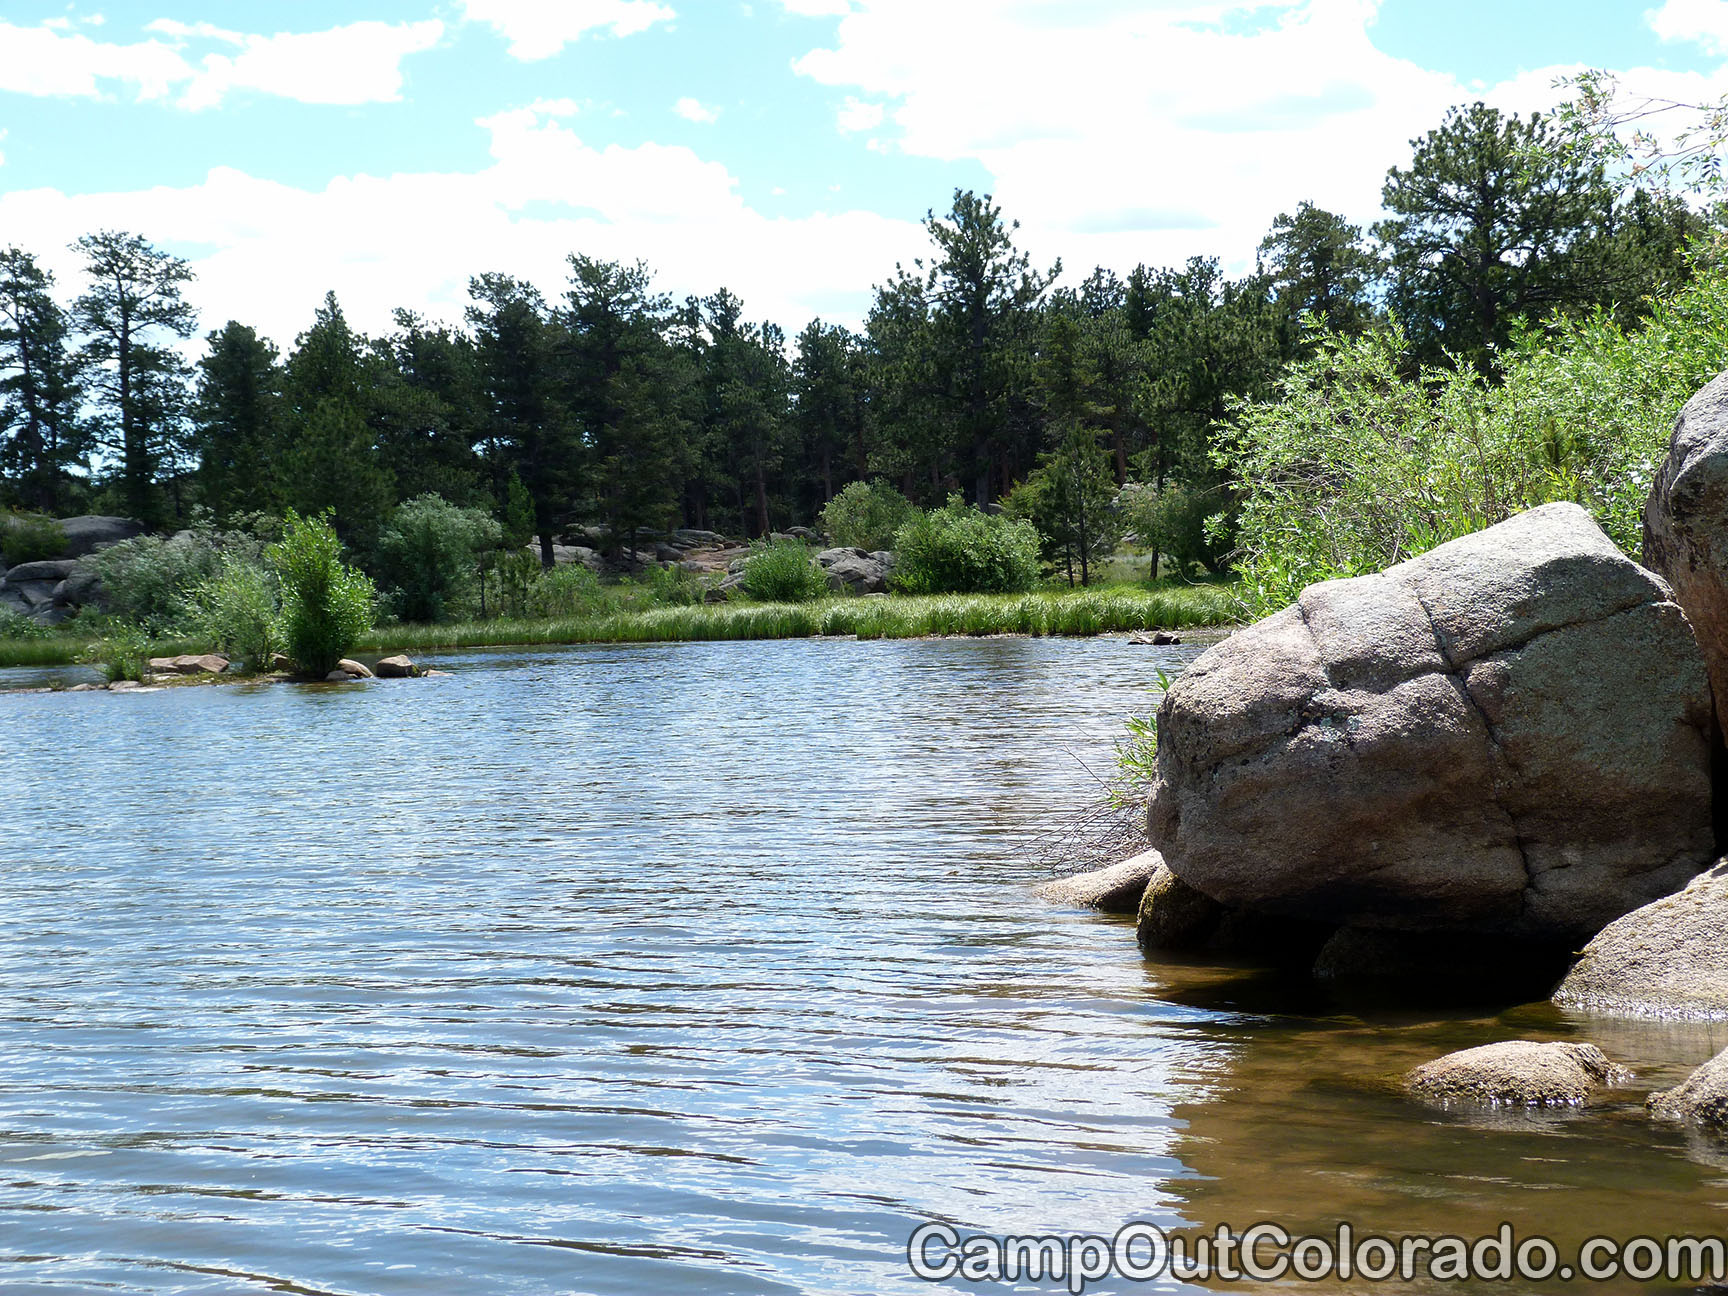 Campoutcolorado-dowdy-lake-campground-crawdad-cove